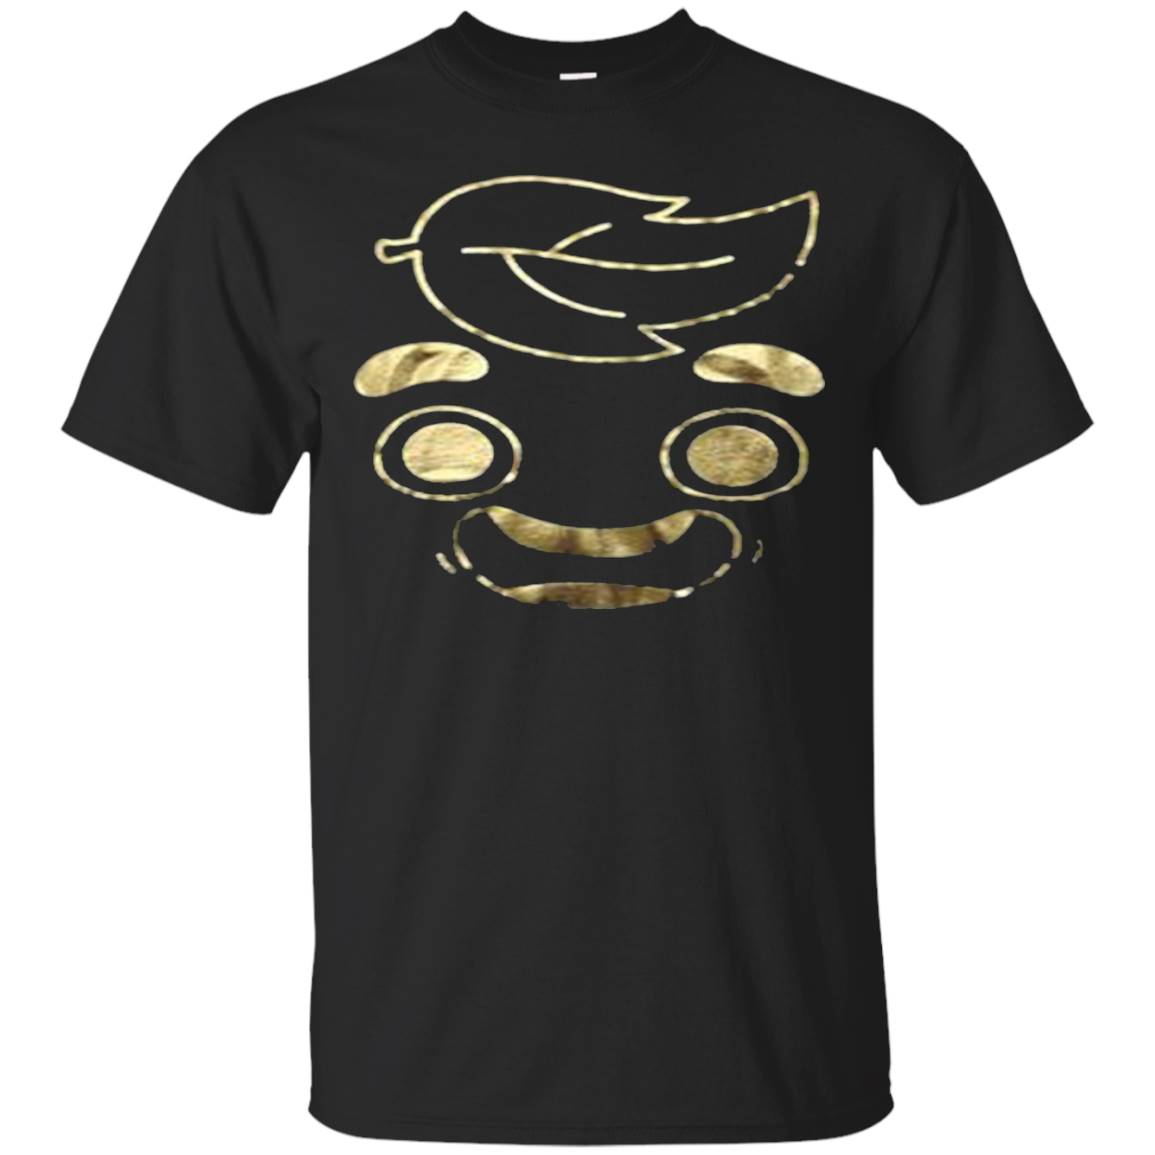 Guava Juice Limited Edition Gold Foil High Quality! T SHIRT